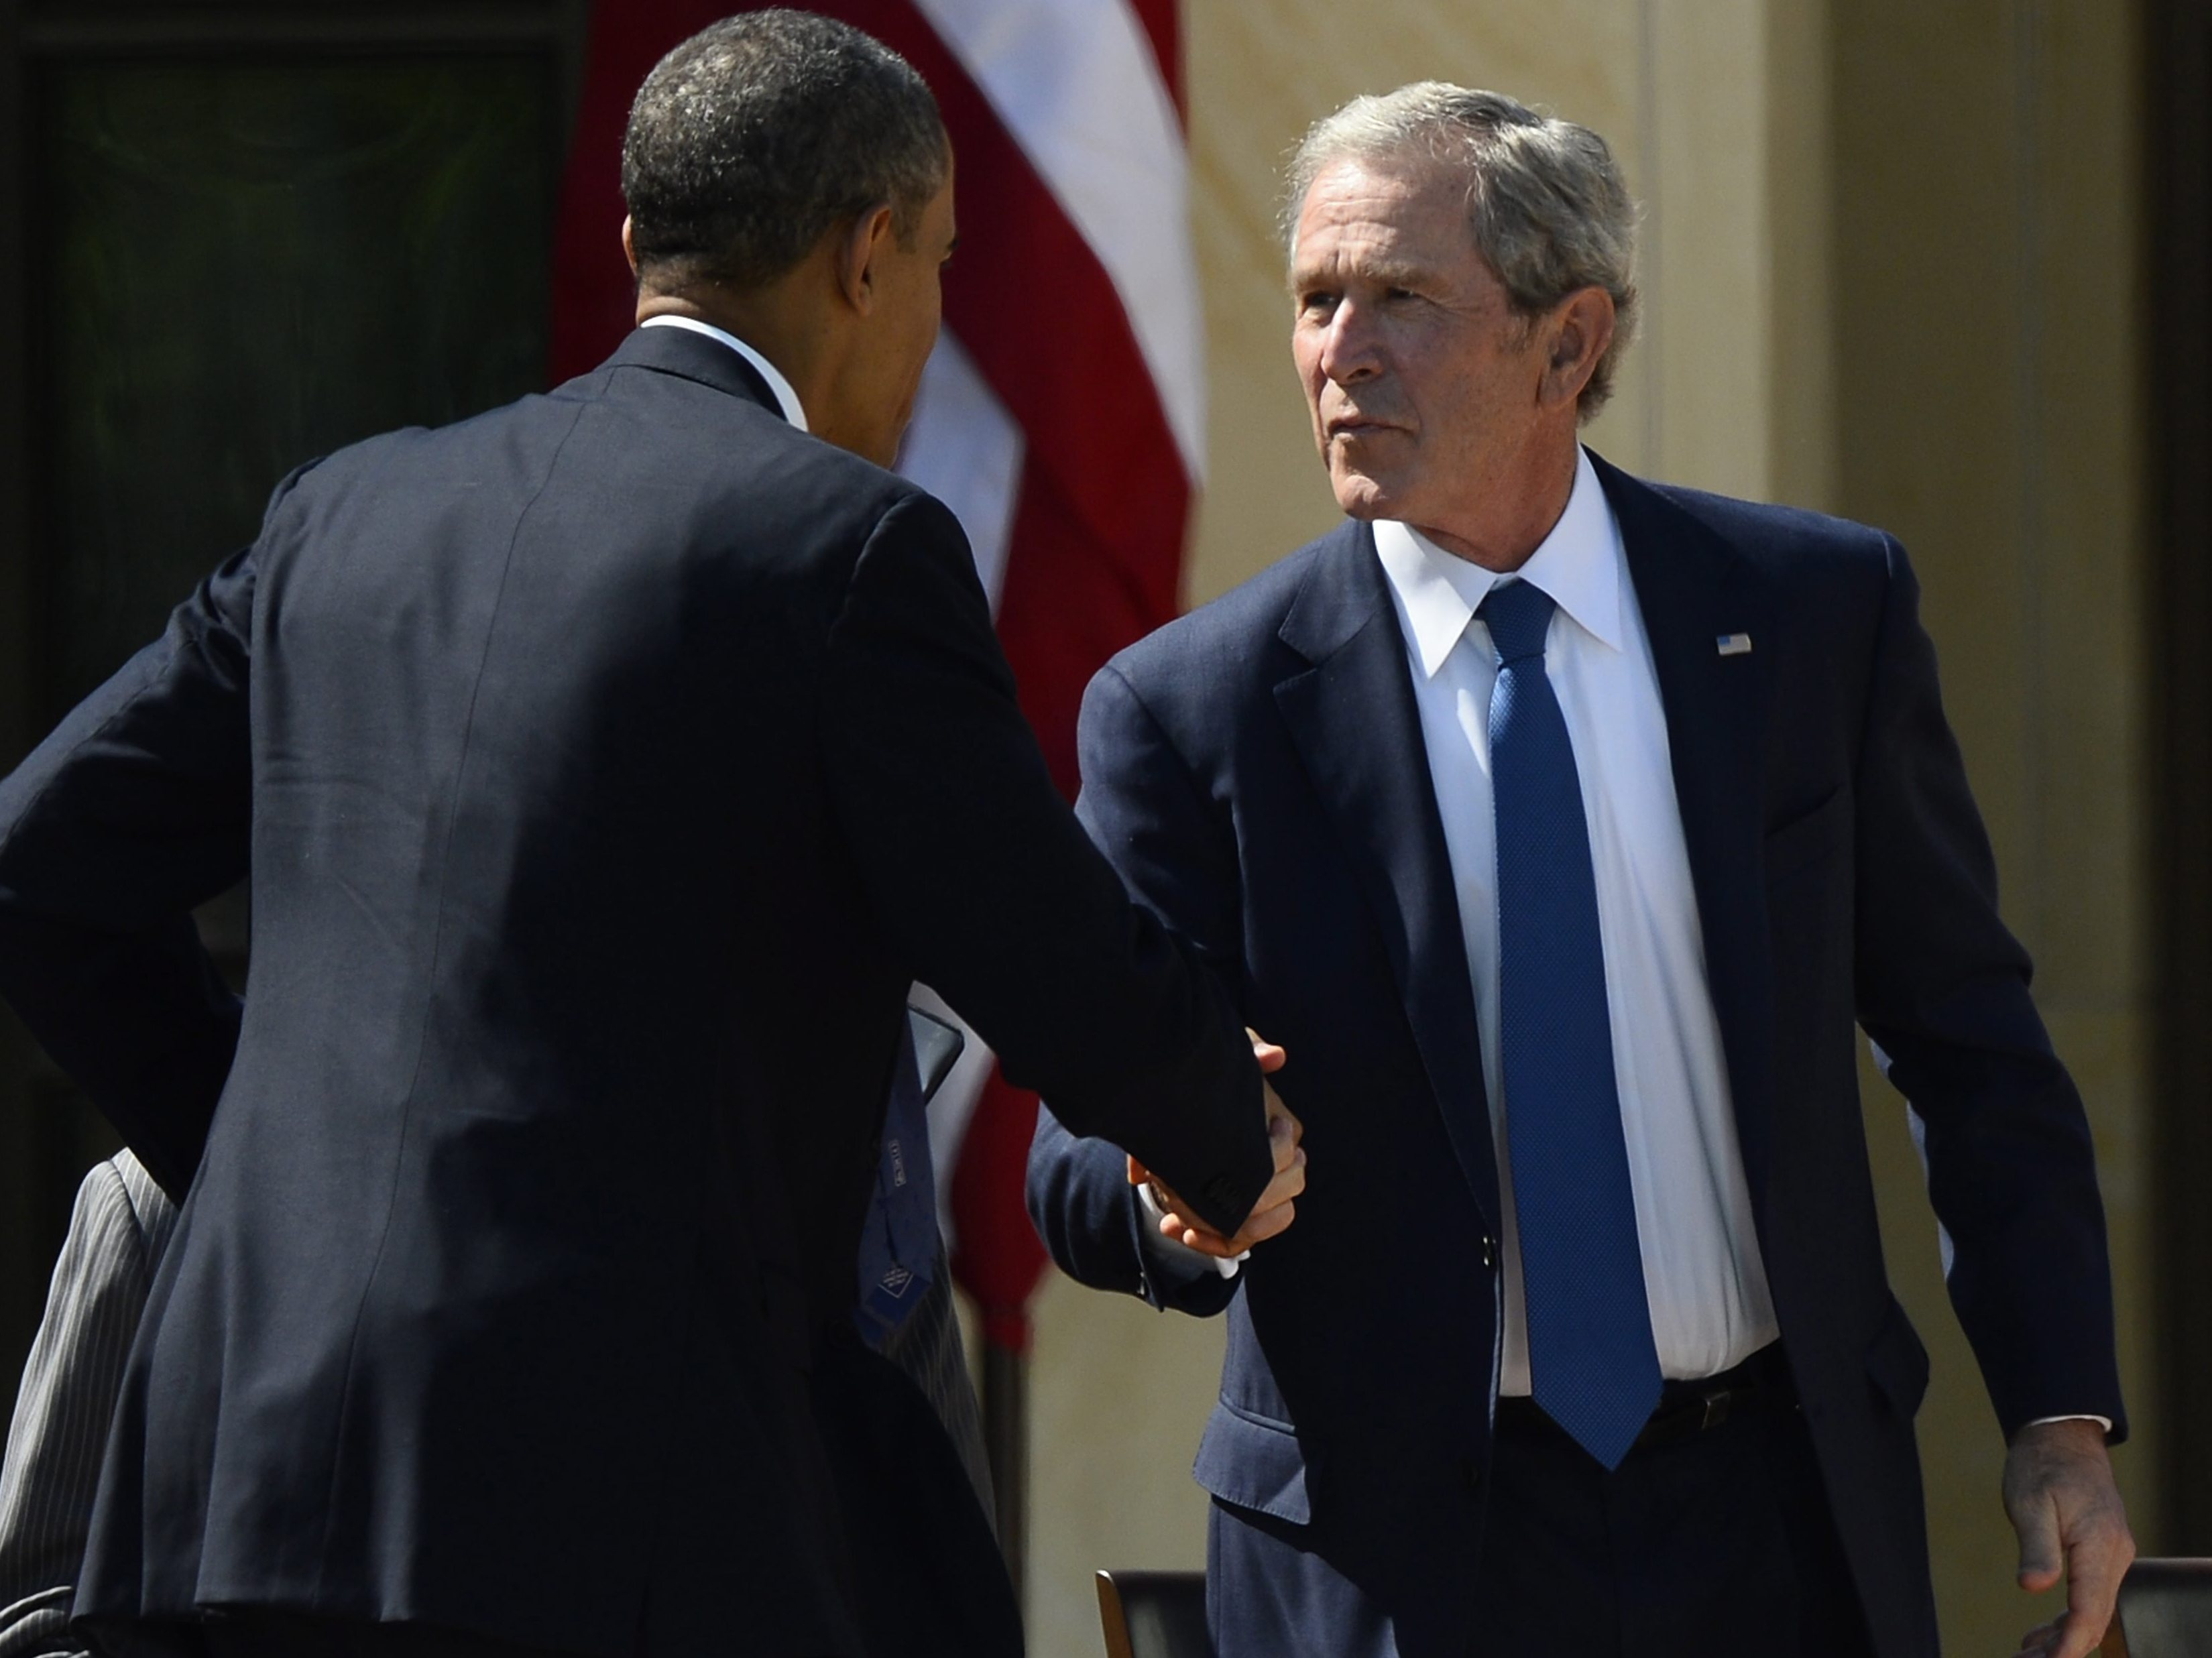 Public's Opinion Of George W. Bush Is Turning Positive